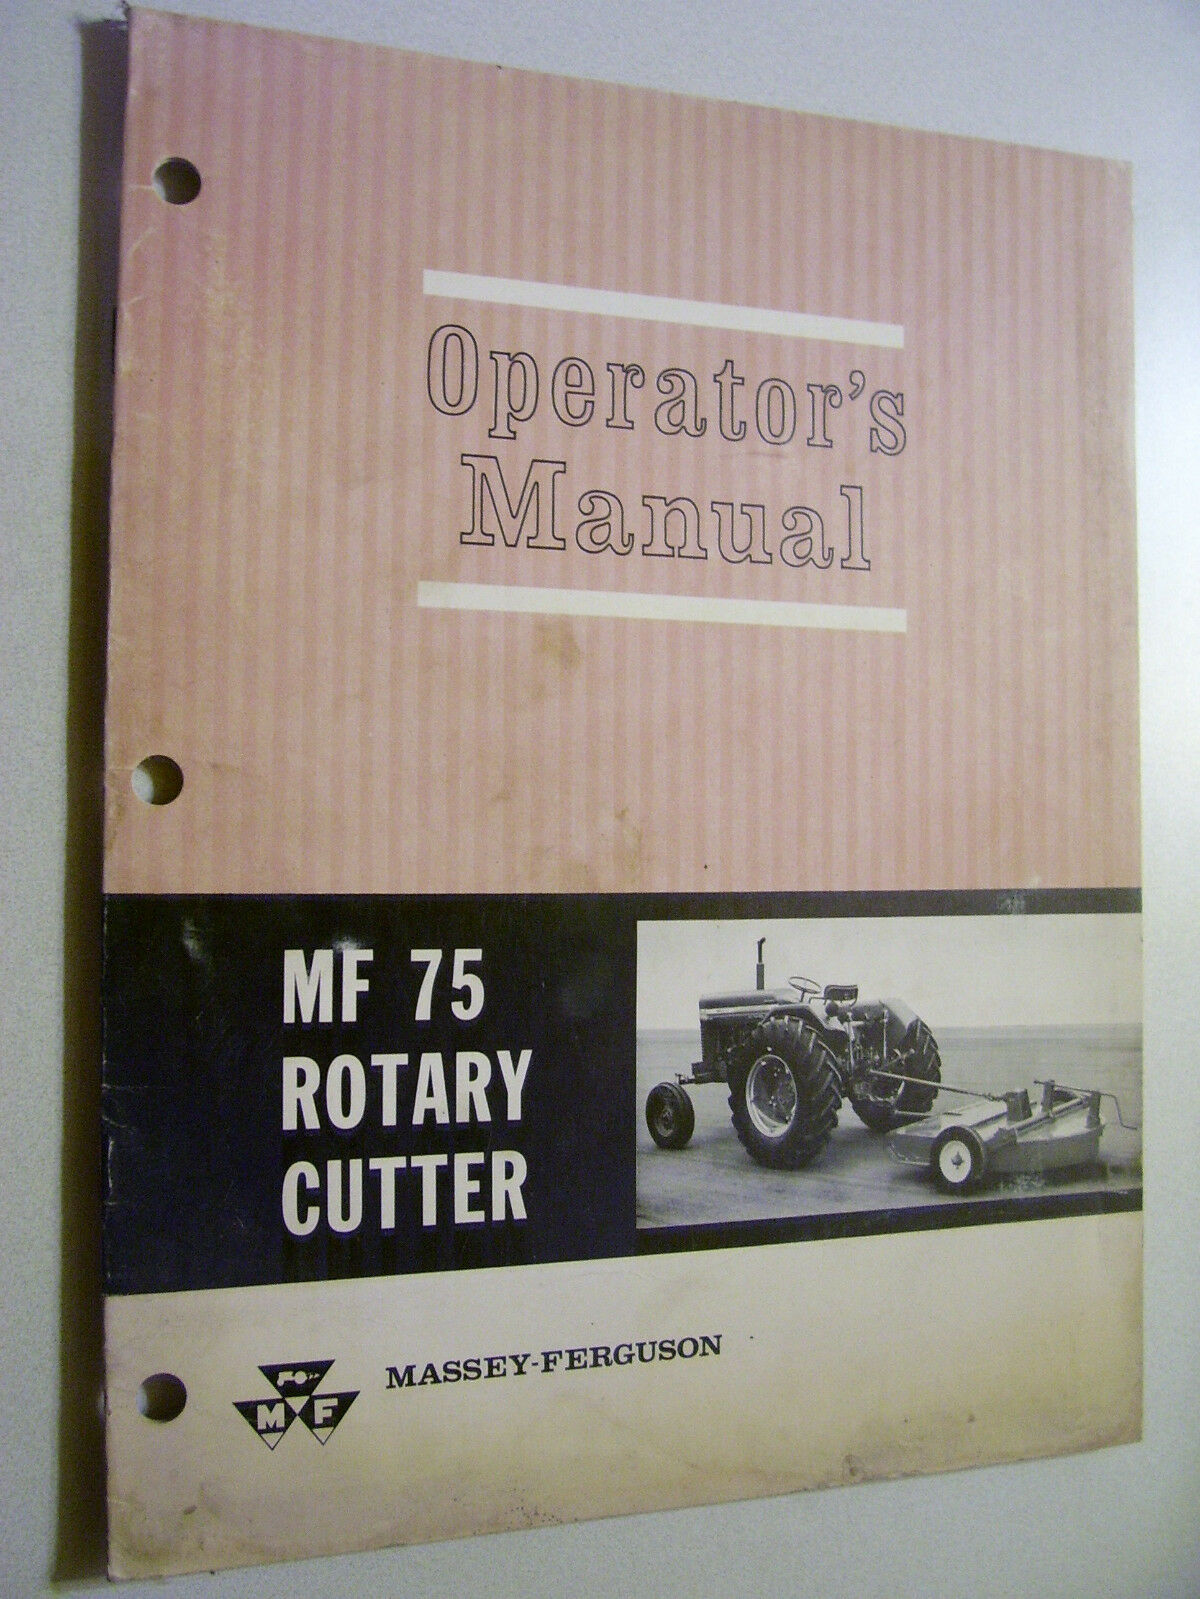 Vintage Massey Ferguson Operators Manual - Mf # 75 Rotary Cutter 1 of 1Only  1 available ...